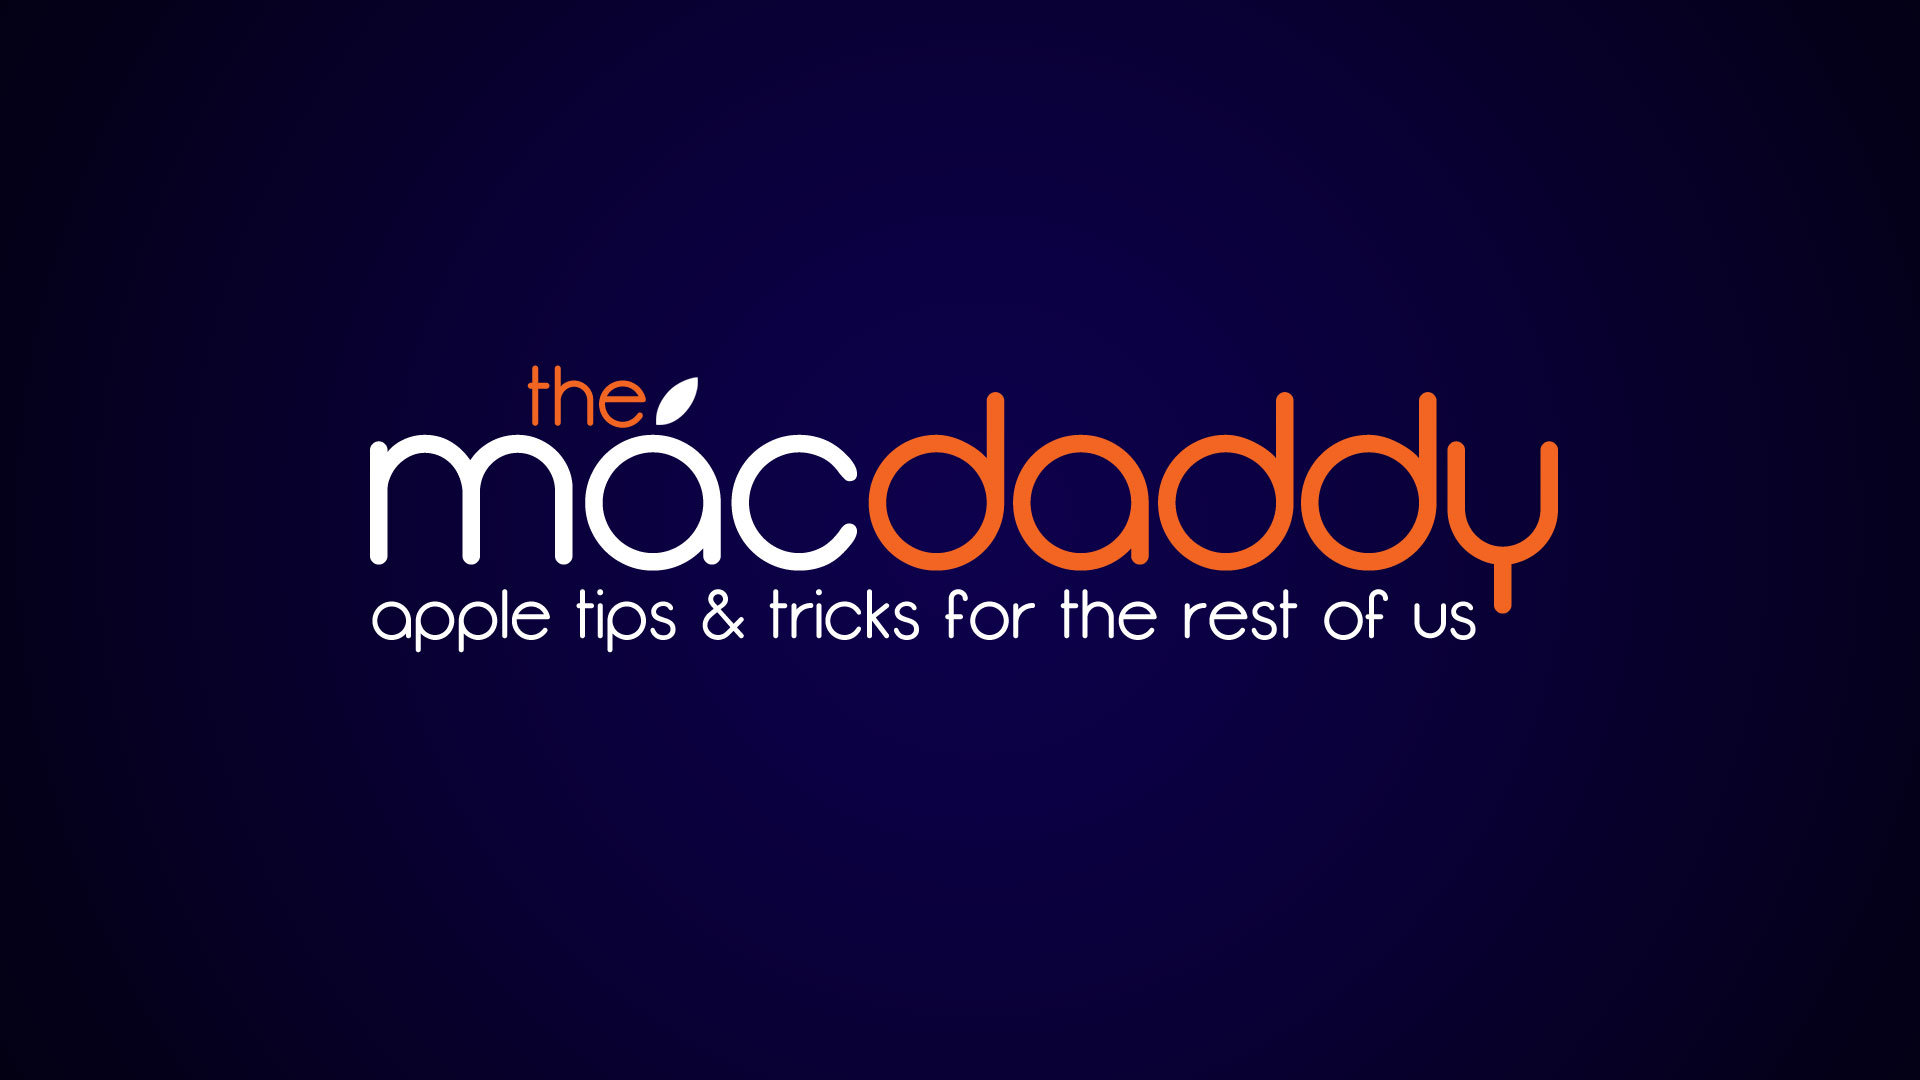 The MacDaddy